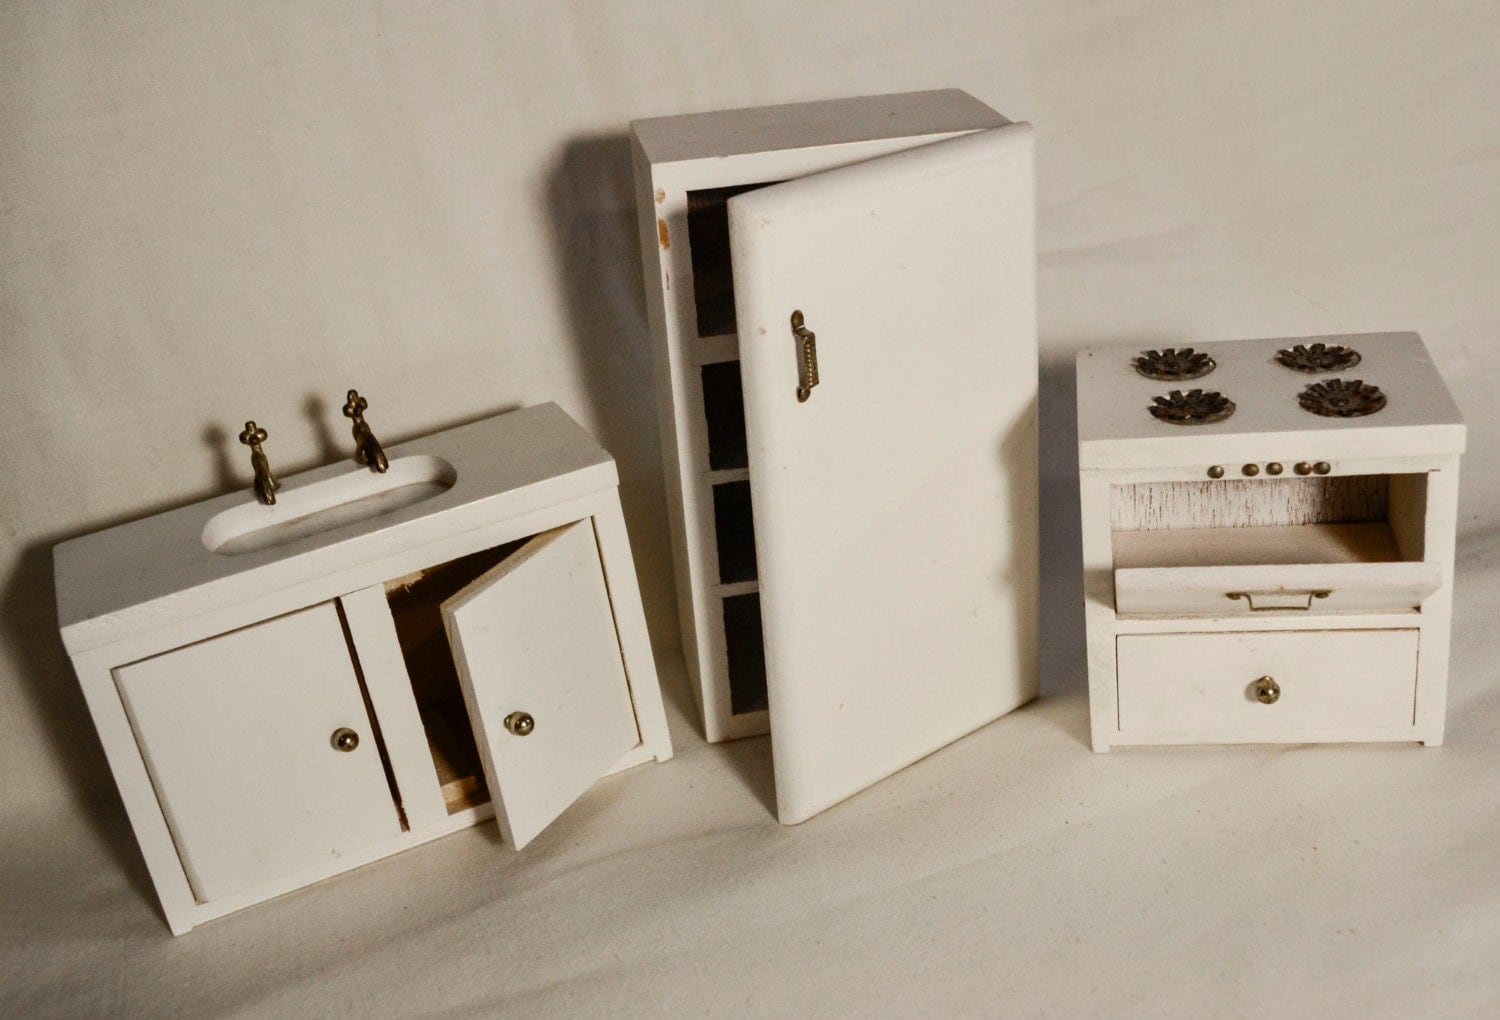 miniature kitchen set haute juice